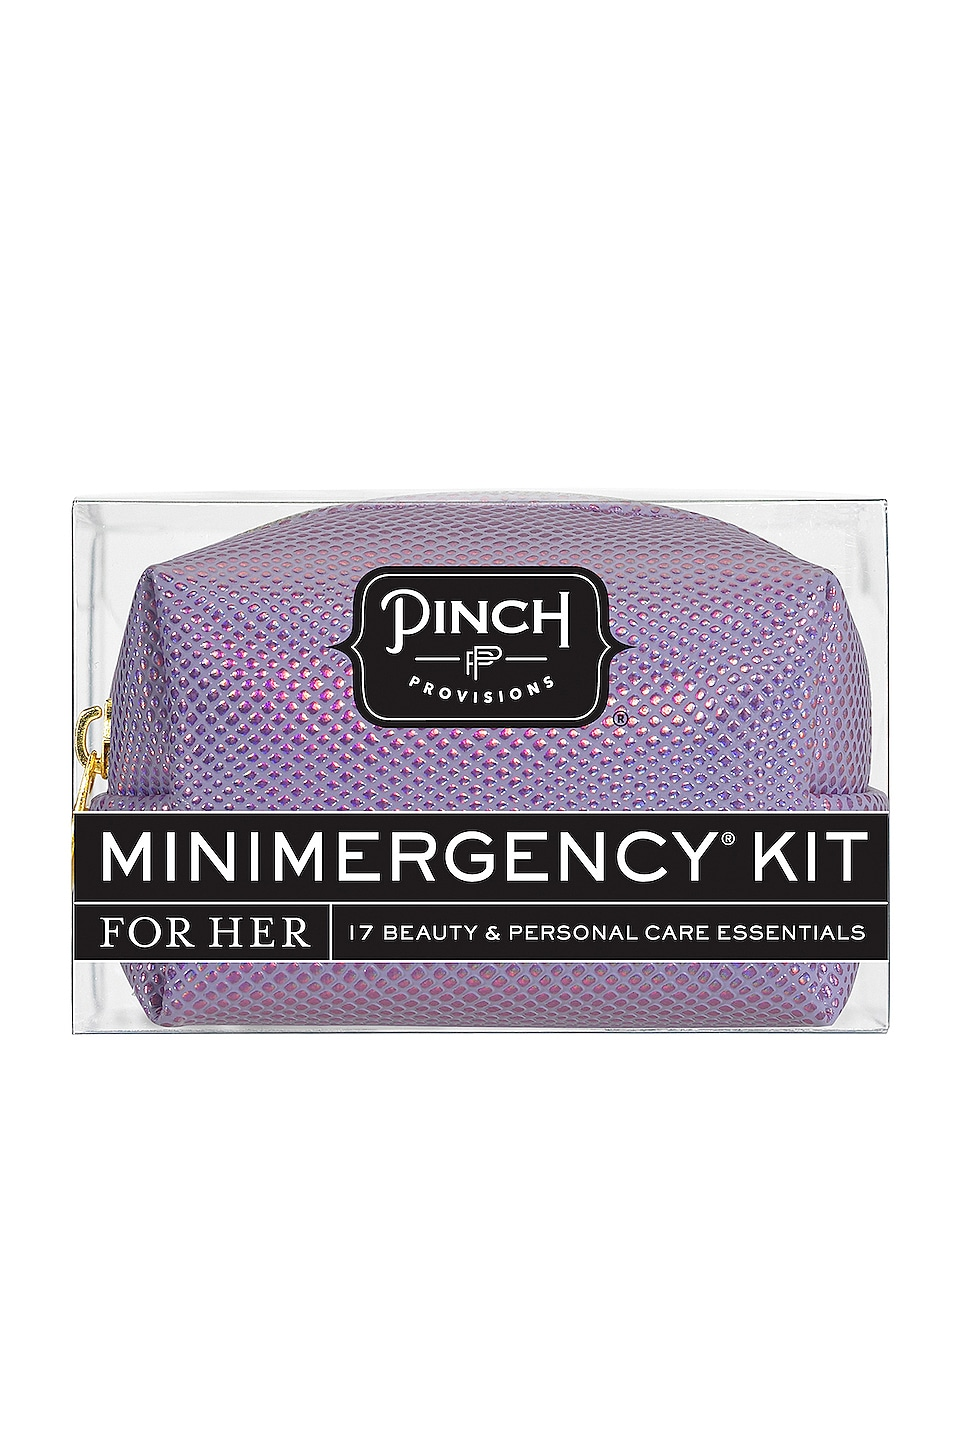 Pinch Provisions Slither Minimergency Kit in Lavender